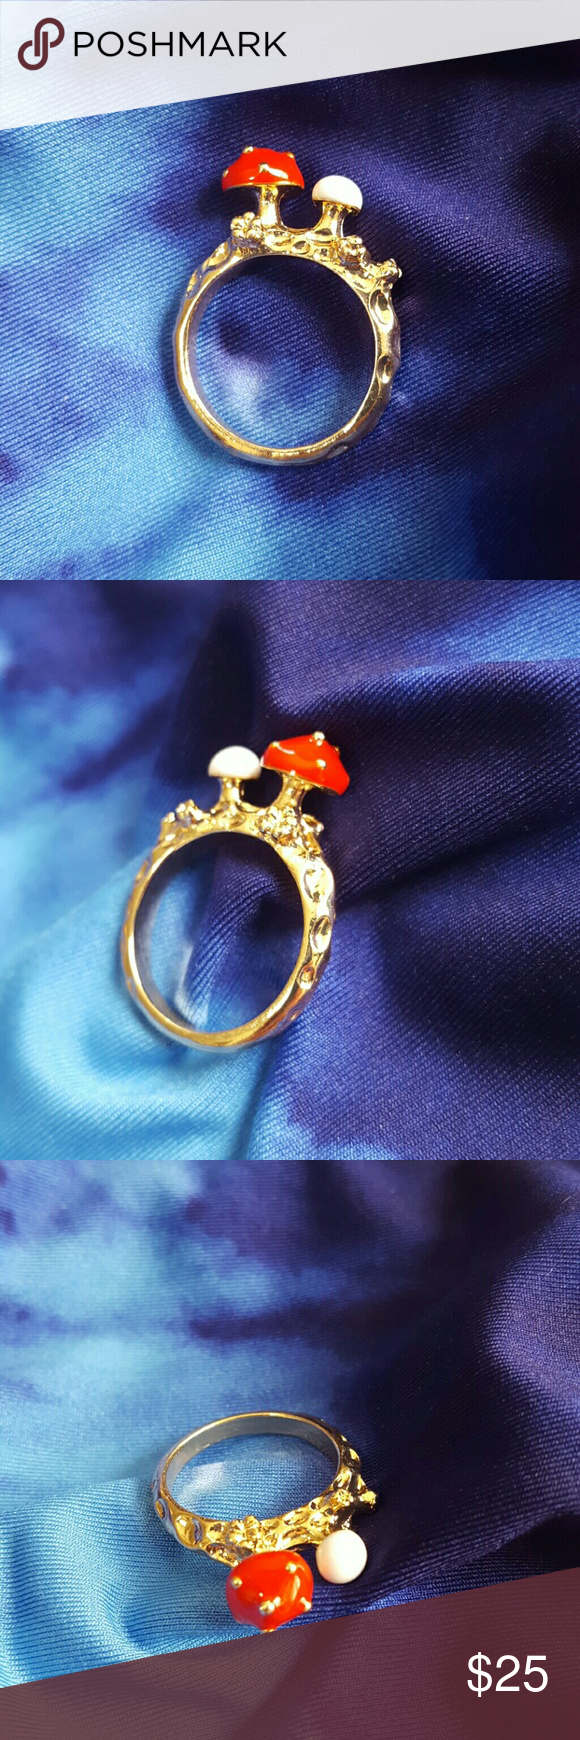 Magical Mushroom Forest Ring This lovely ring has a red and white mushroom on it! The band is detailed like a wooden forests tree bark and then the mushrooms har enamel on them the red is spoted and the white is is a brand new little fungi. This ring is a size 6 and is brand new and unused. Great with your favorite shirt and jeans. Other great accessories in my closet. Jewelry Rings